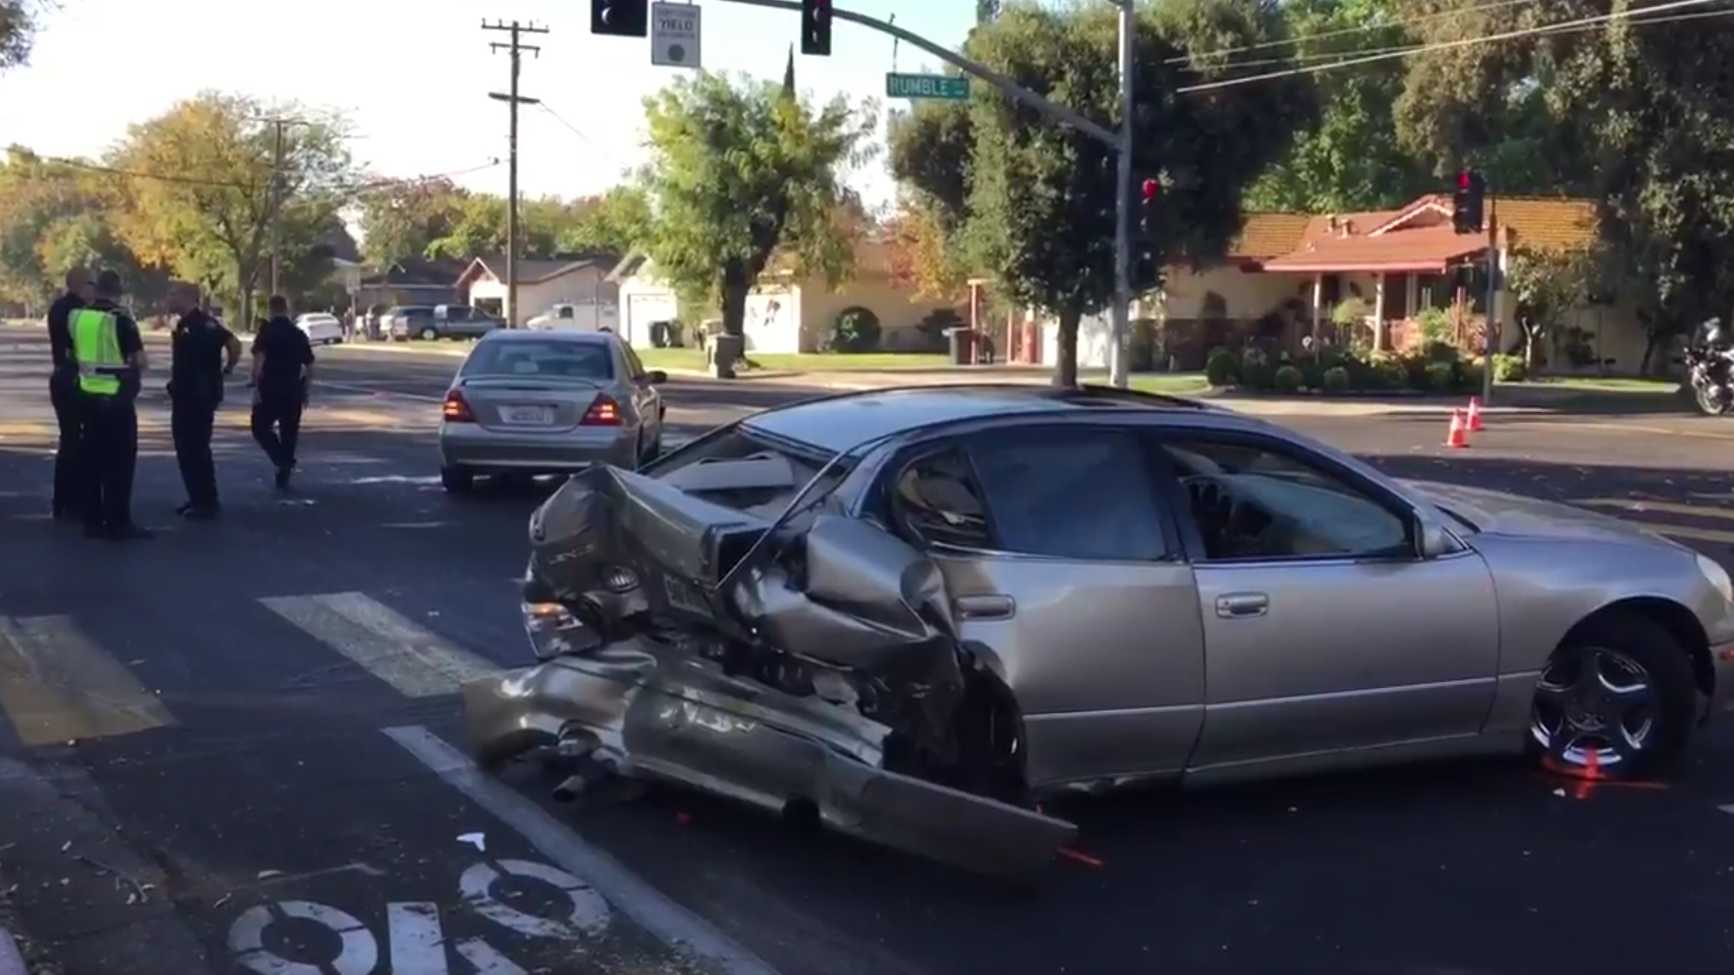 A man died in a crash on Wednesday, Oct. 26, 2016, at at Tully and Rumble roads – in front of Davis High School, Modesto Police said.